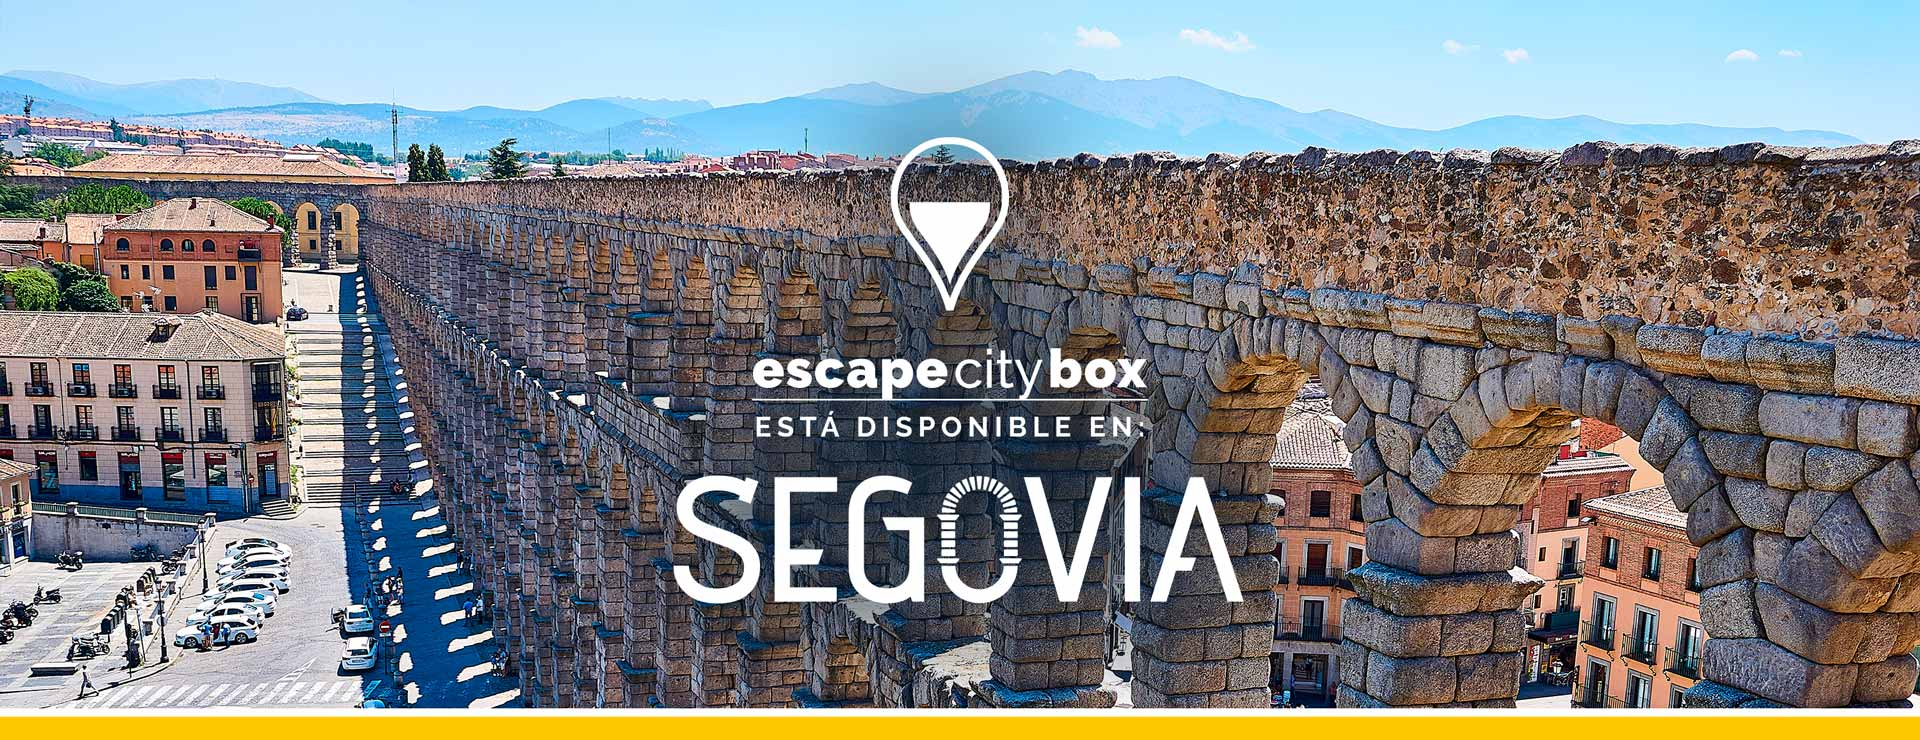 City Escape en Segovia